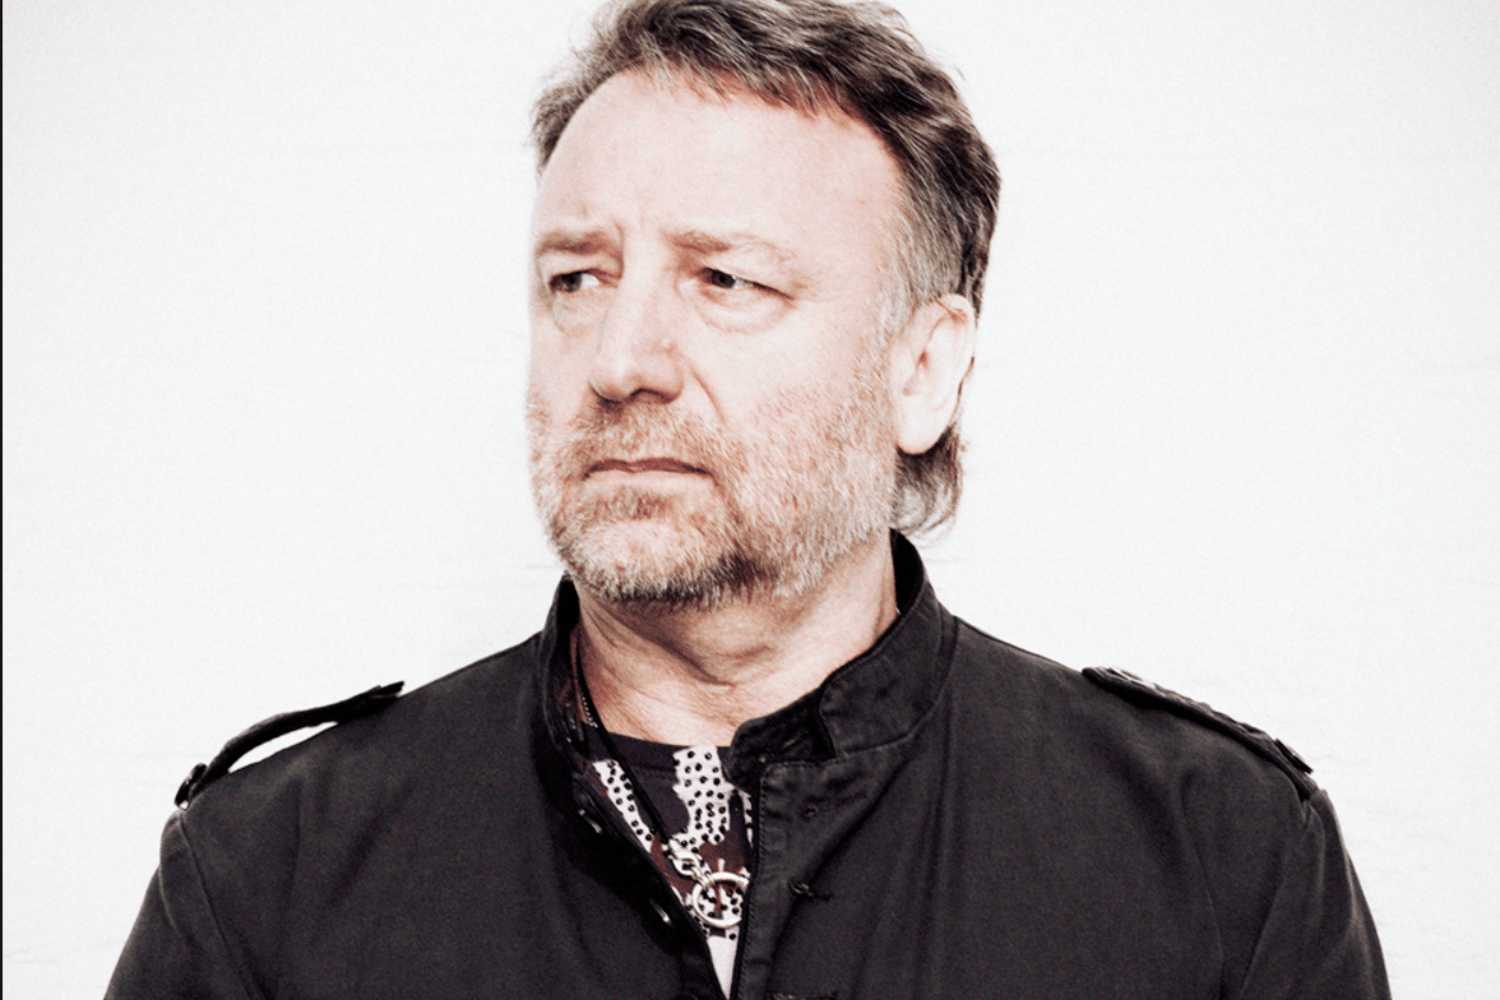 Peter Hook to play Joy Division's 'Unknown Pleasures' and 'Closer' in full at special UK shows